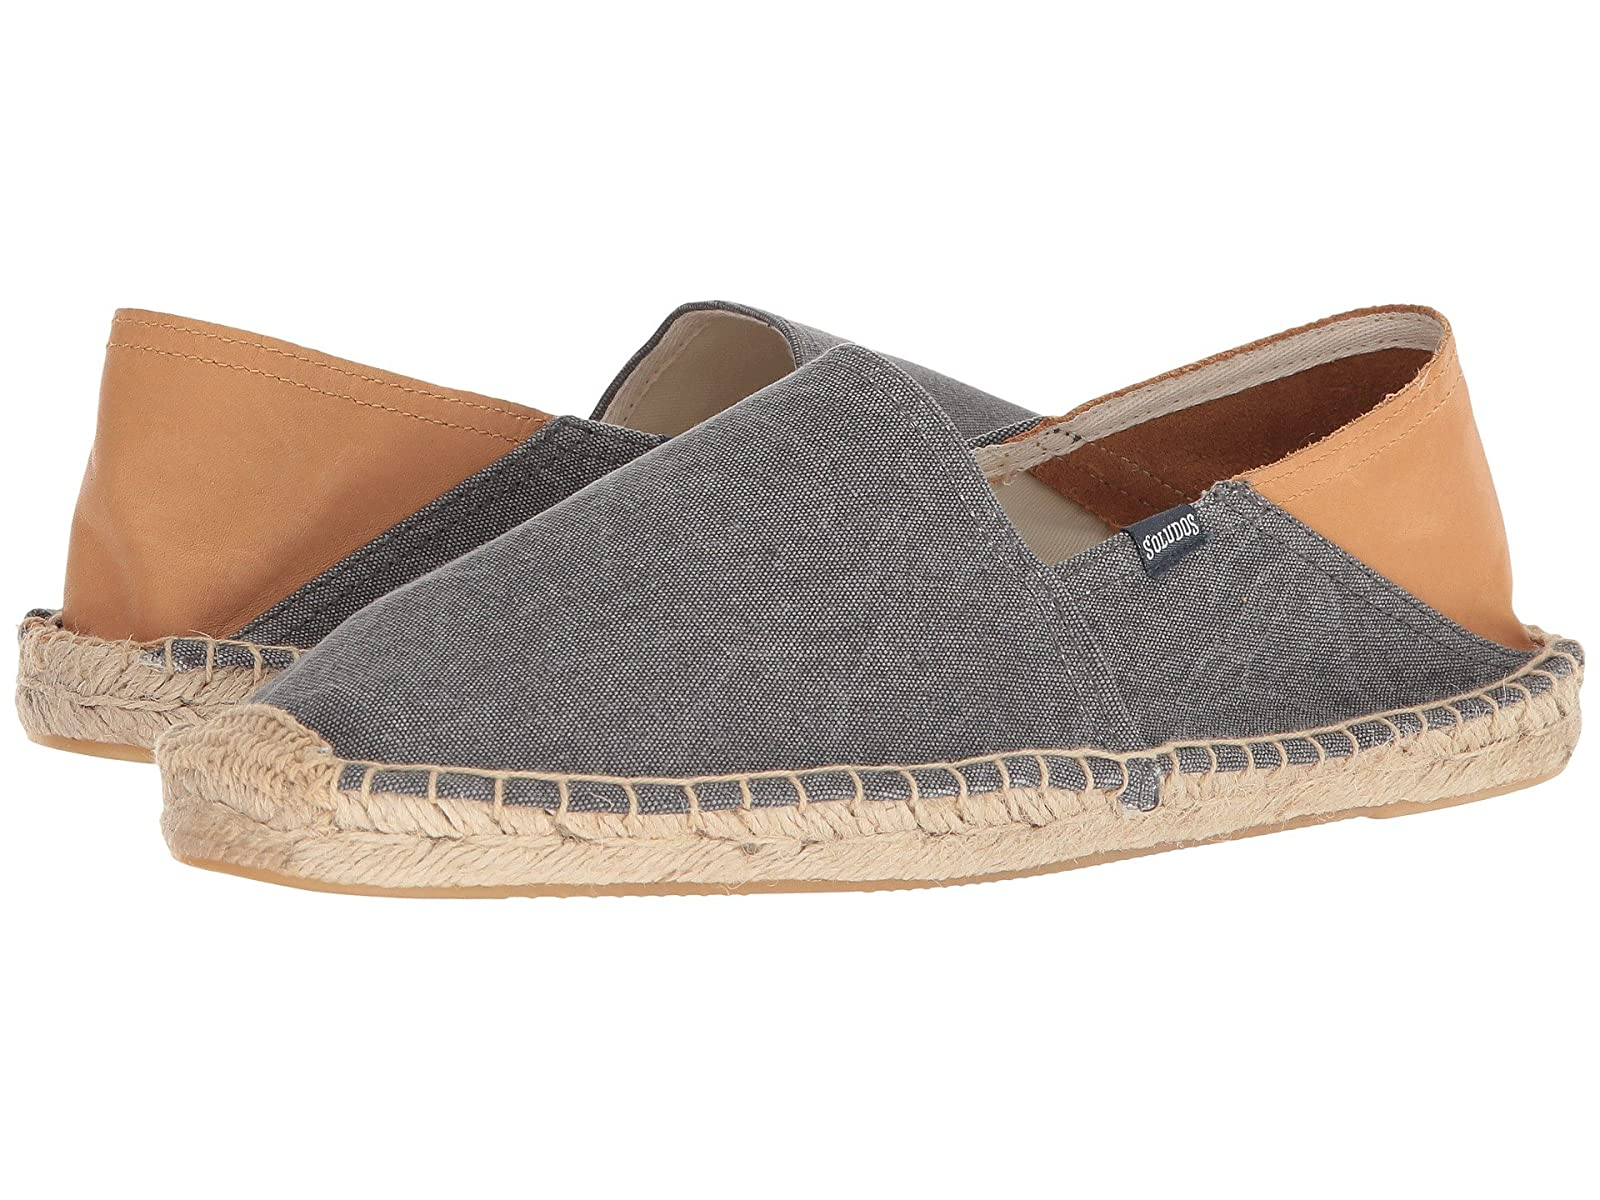 Soludos Convertible OriginalAtmospheric grades have affordable shoes